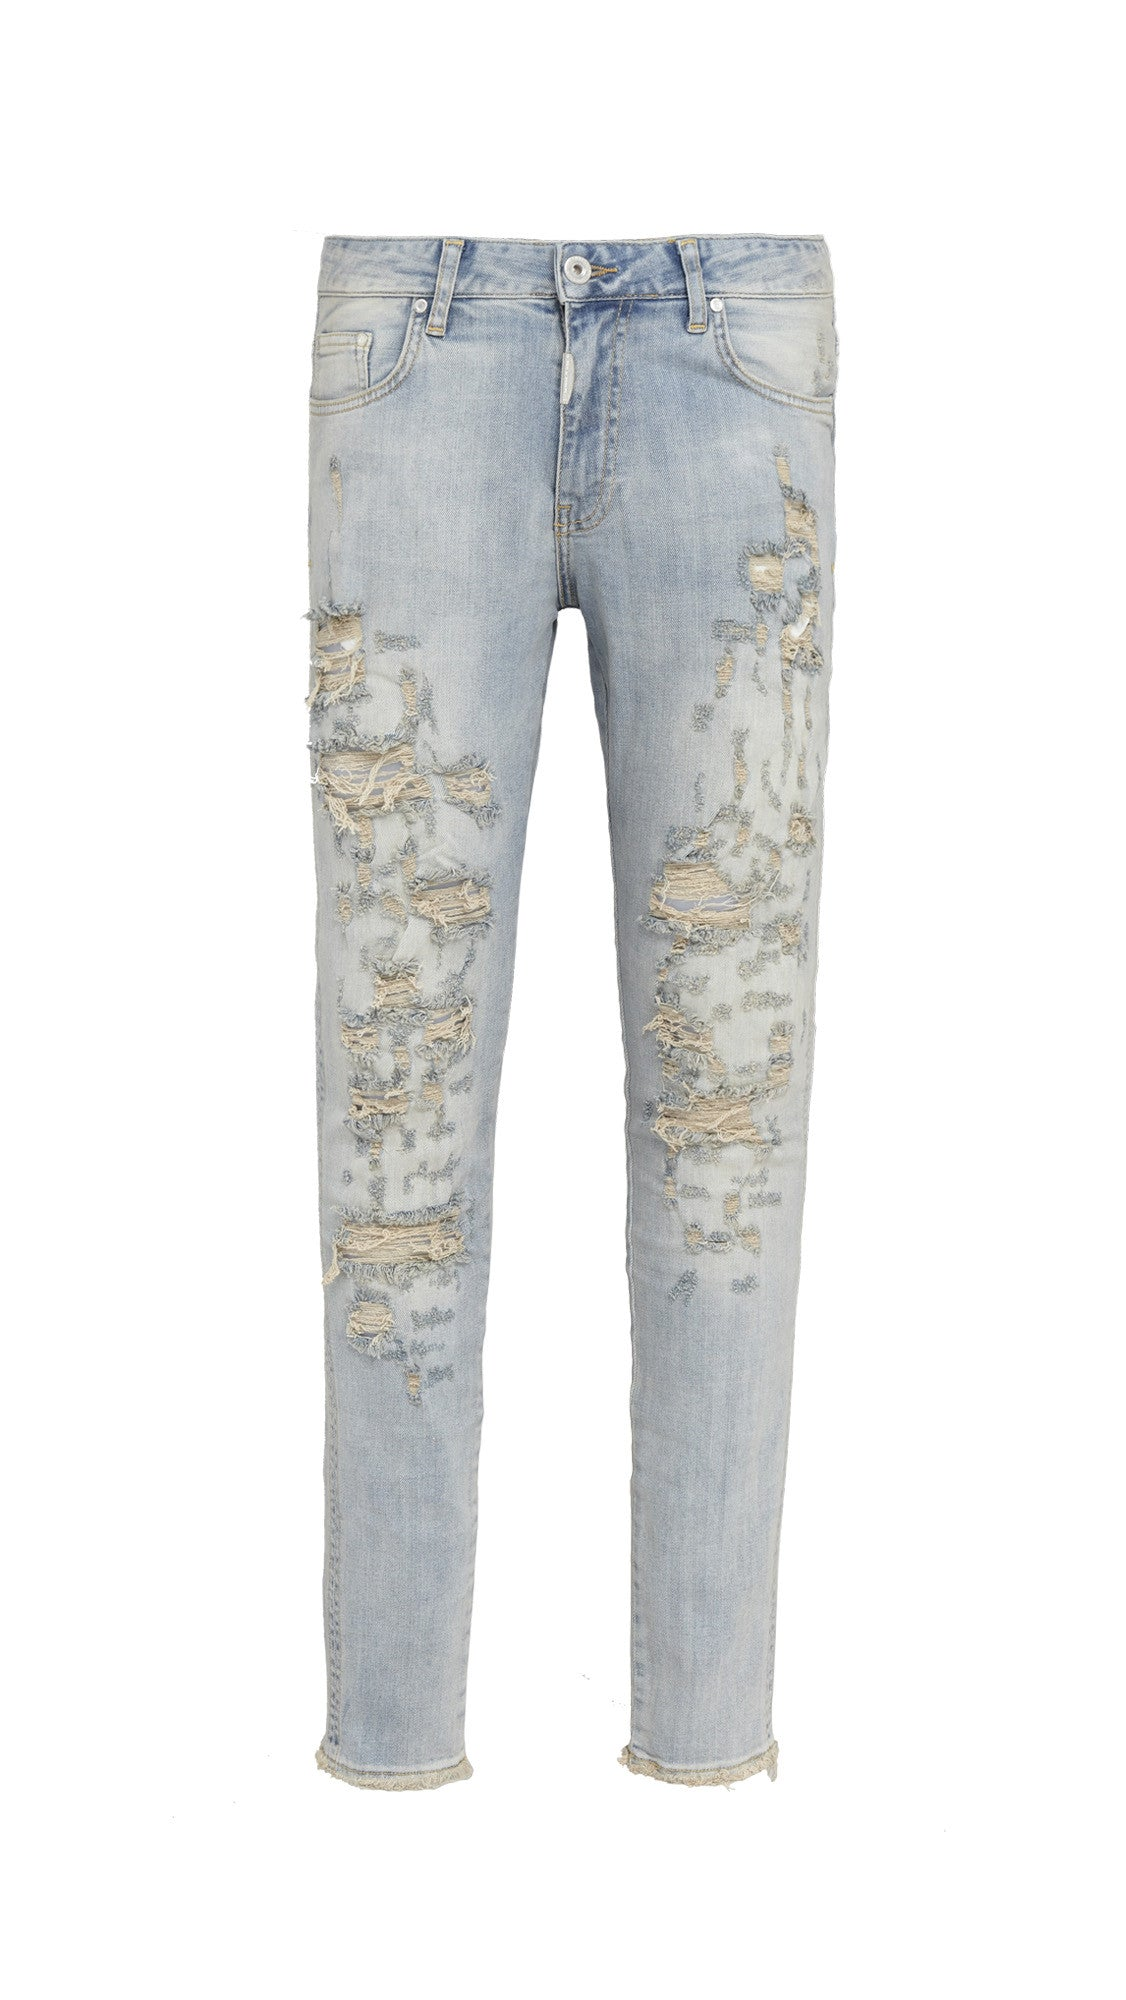 Shredded Denim - Pale Blue